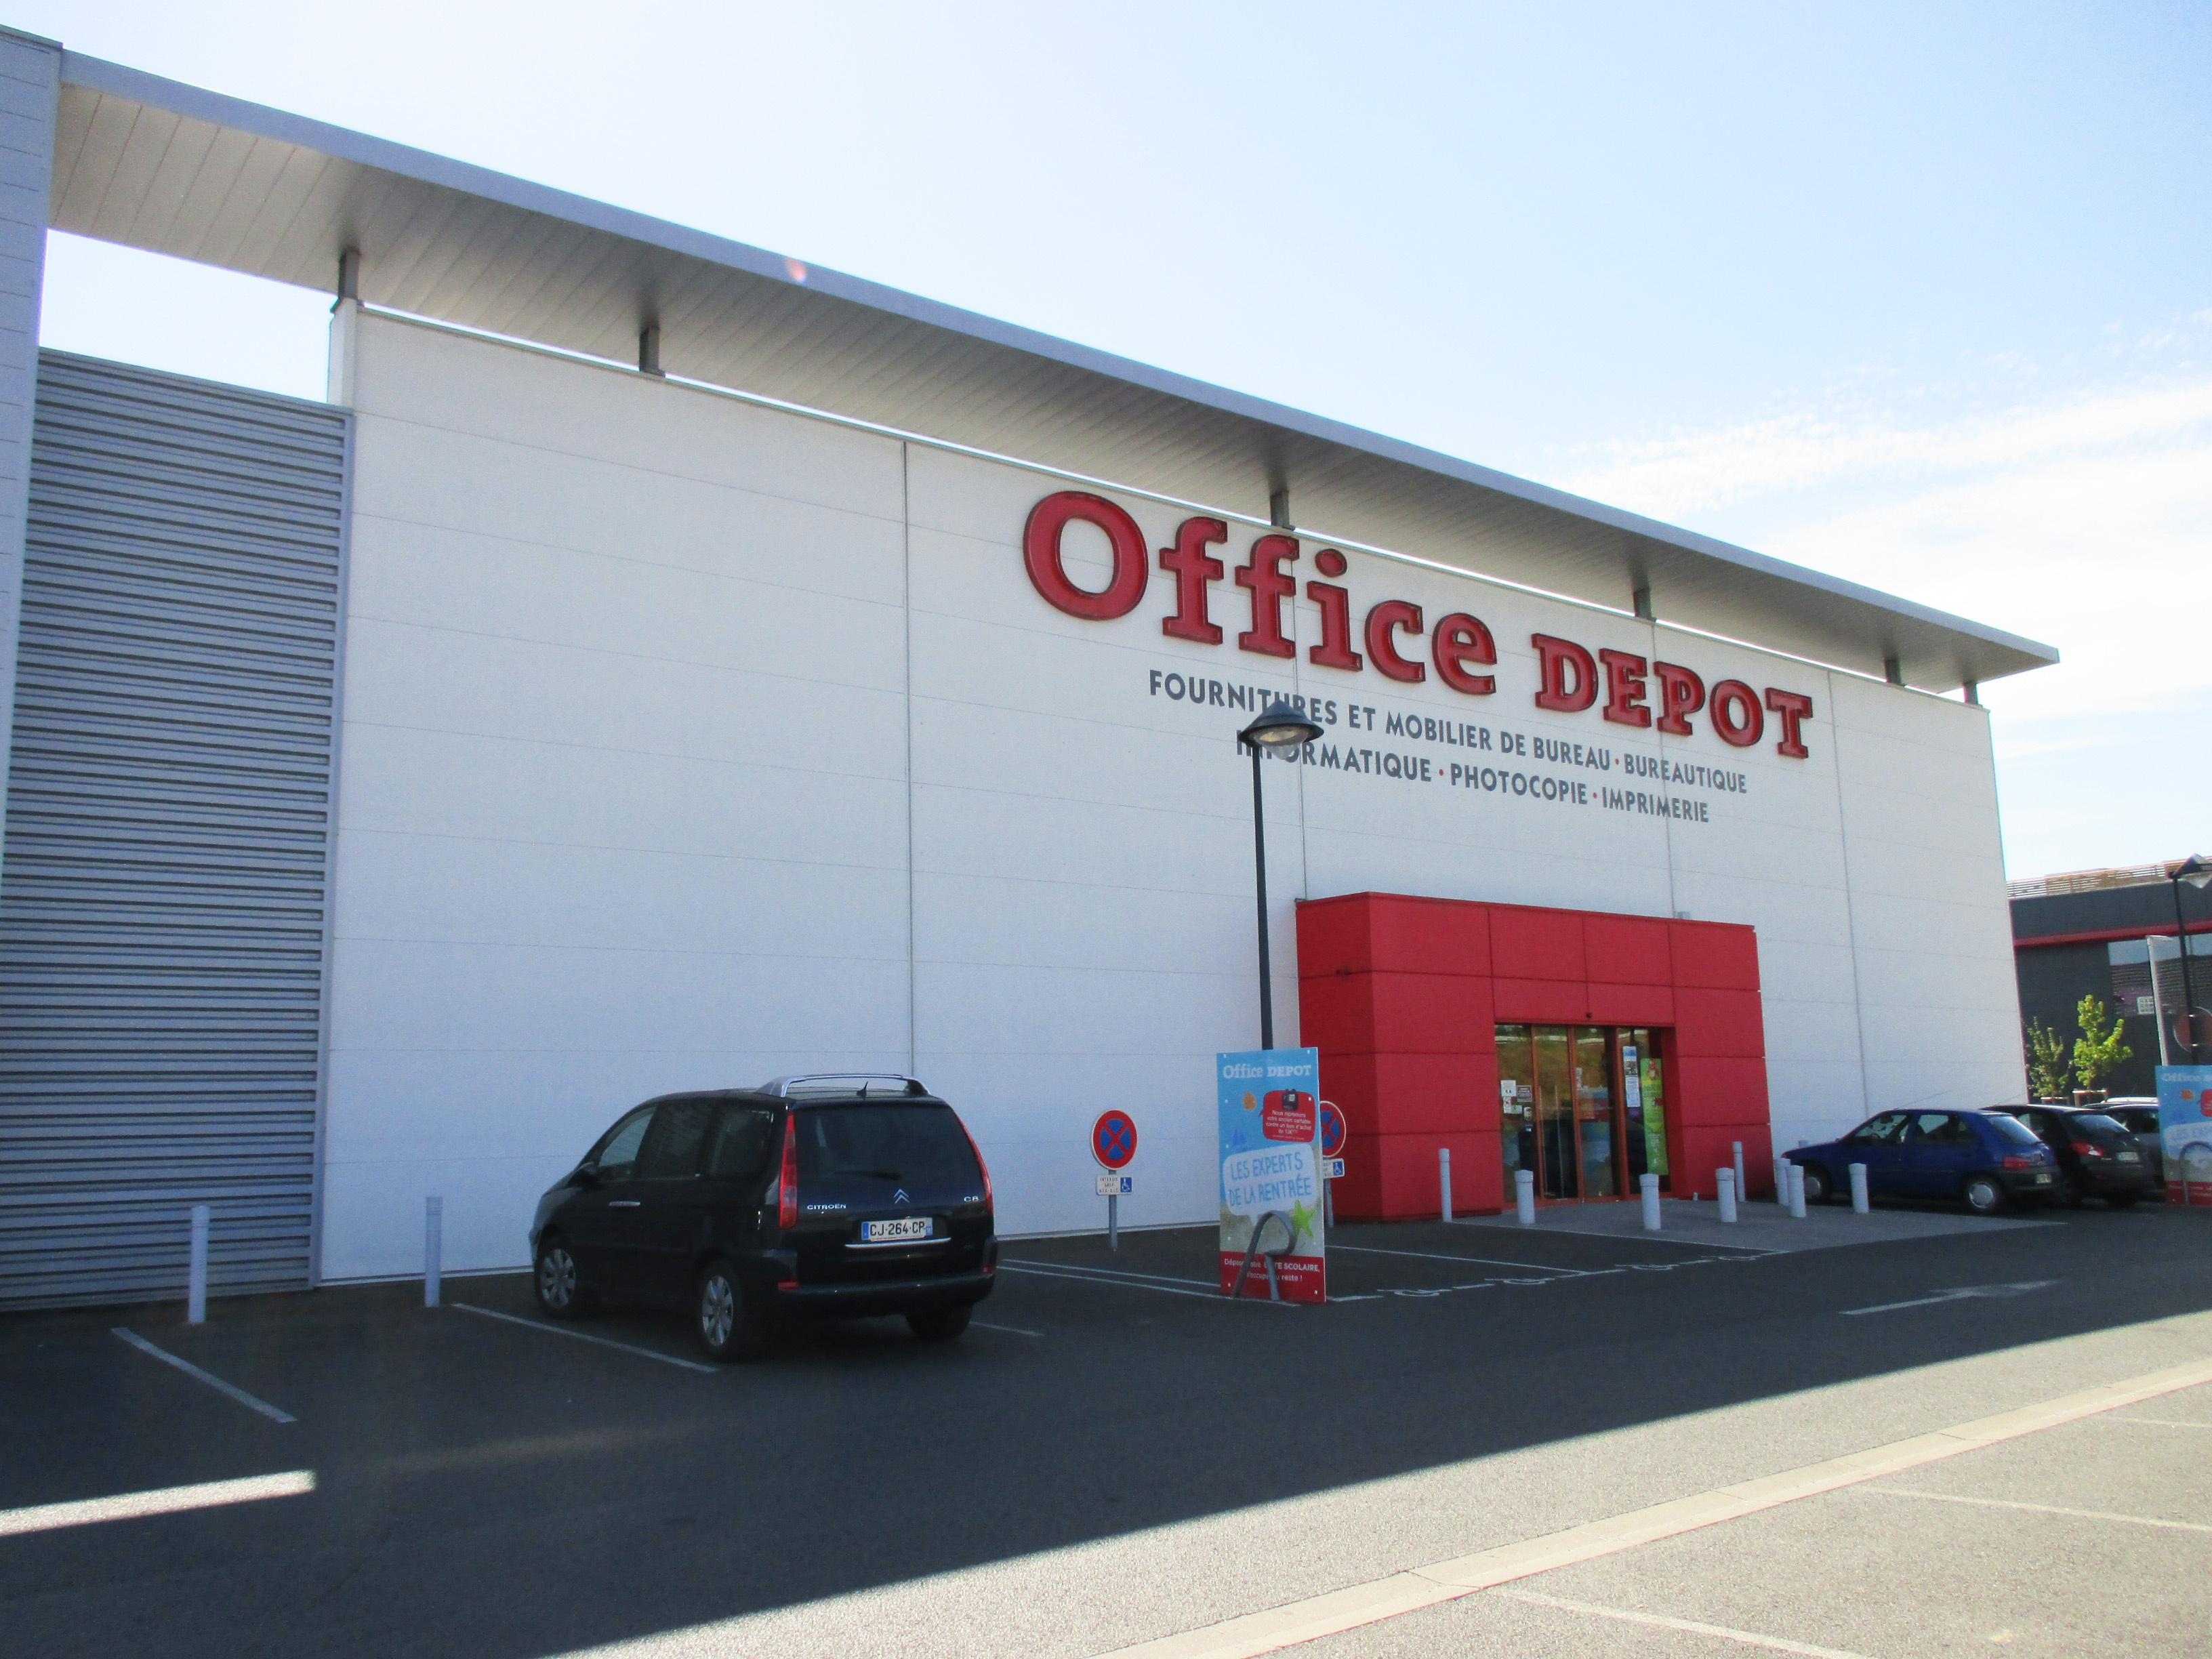 magasin office depot angers : fournitures, mobiliers de bureau